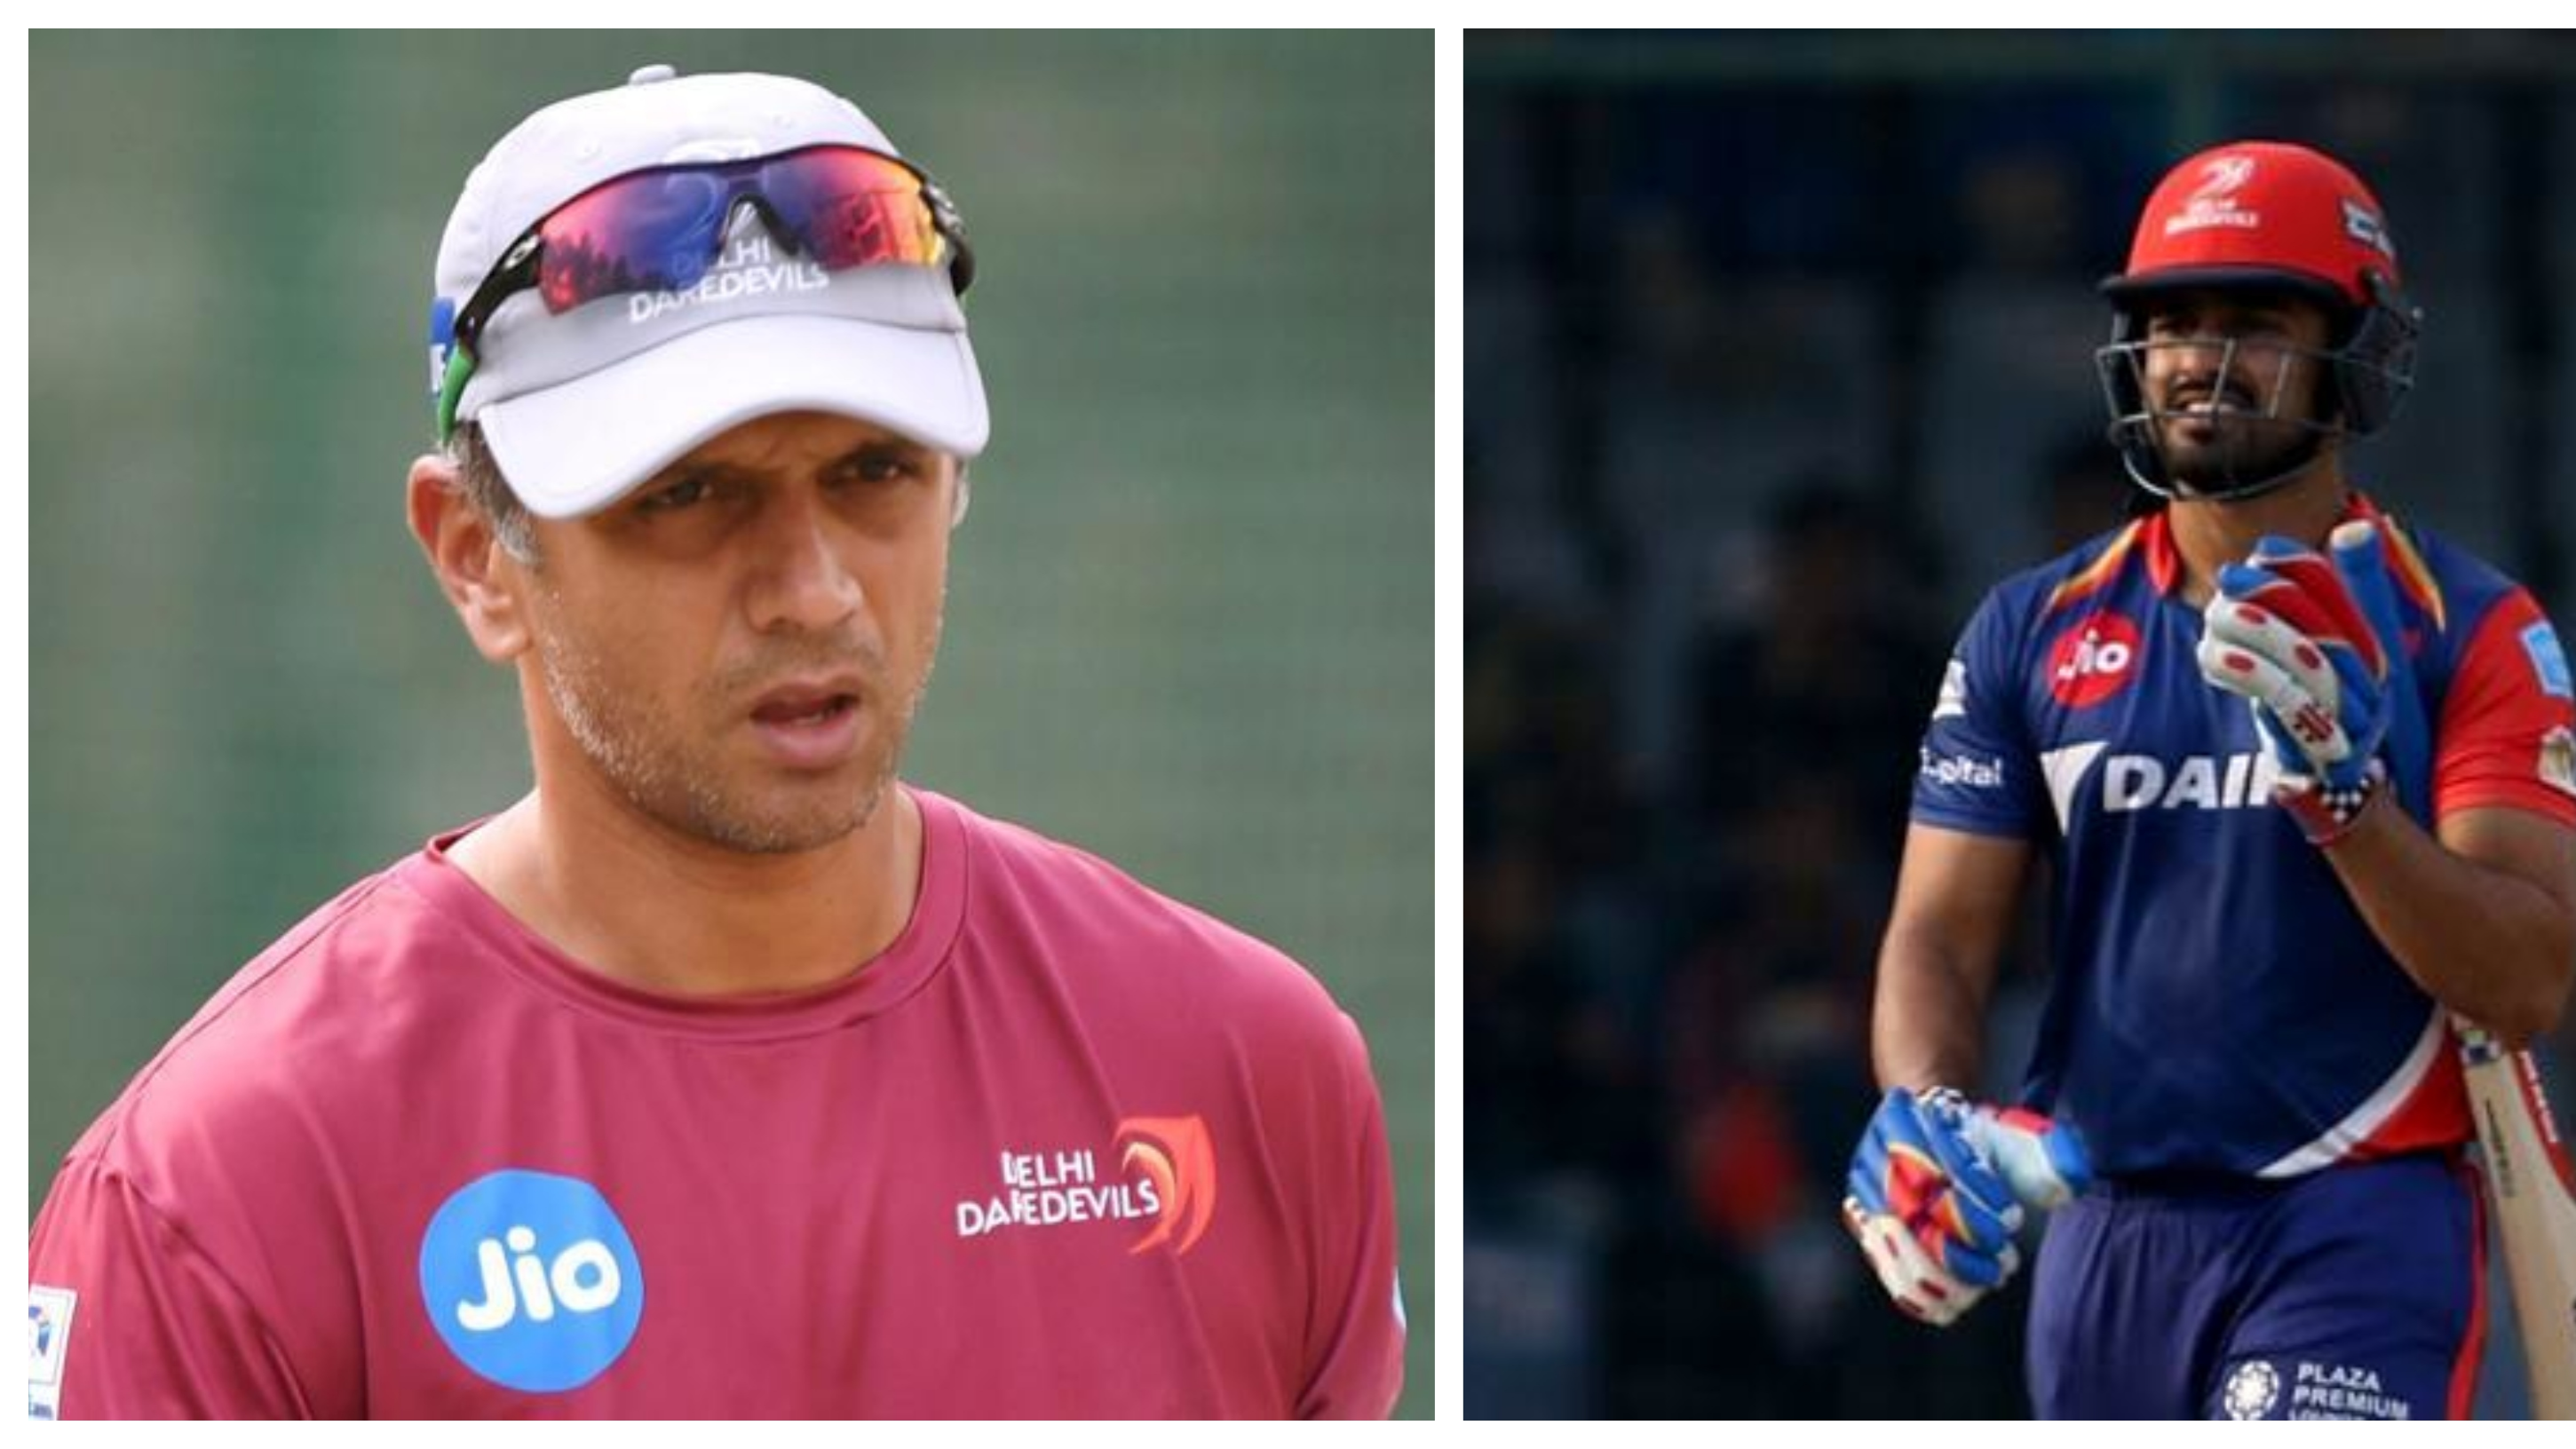 Rahul Dravid is someone I look up to, says Karun Nair